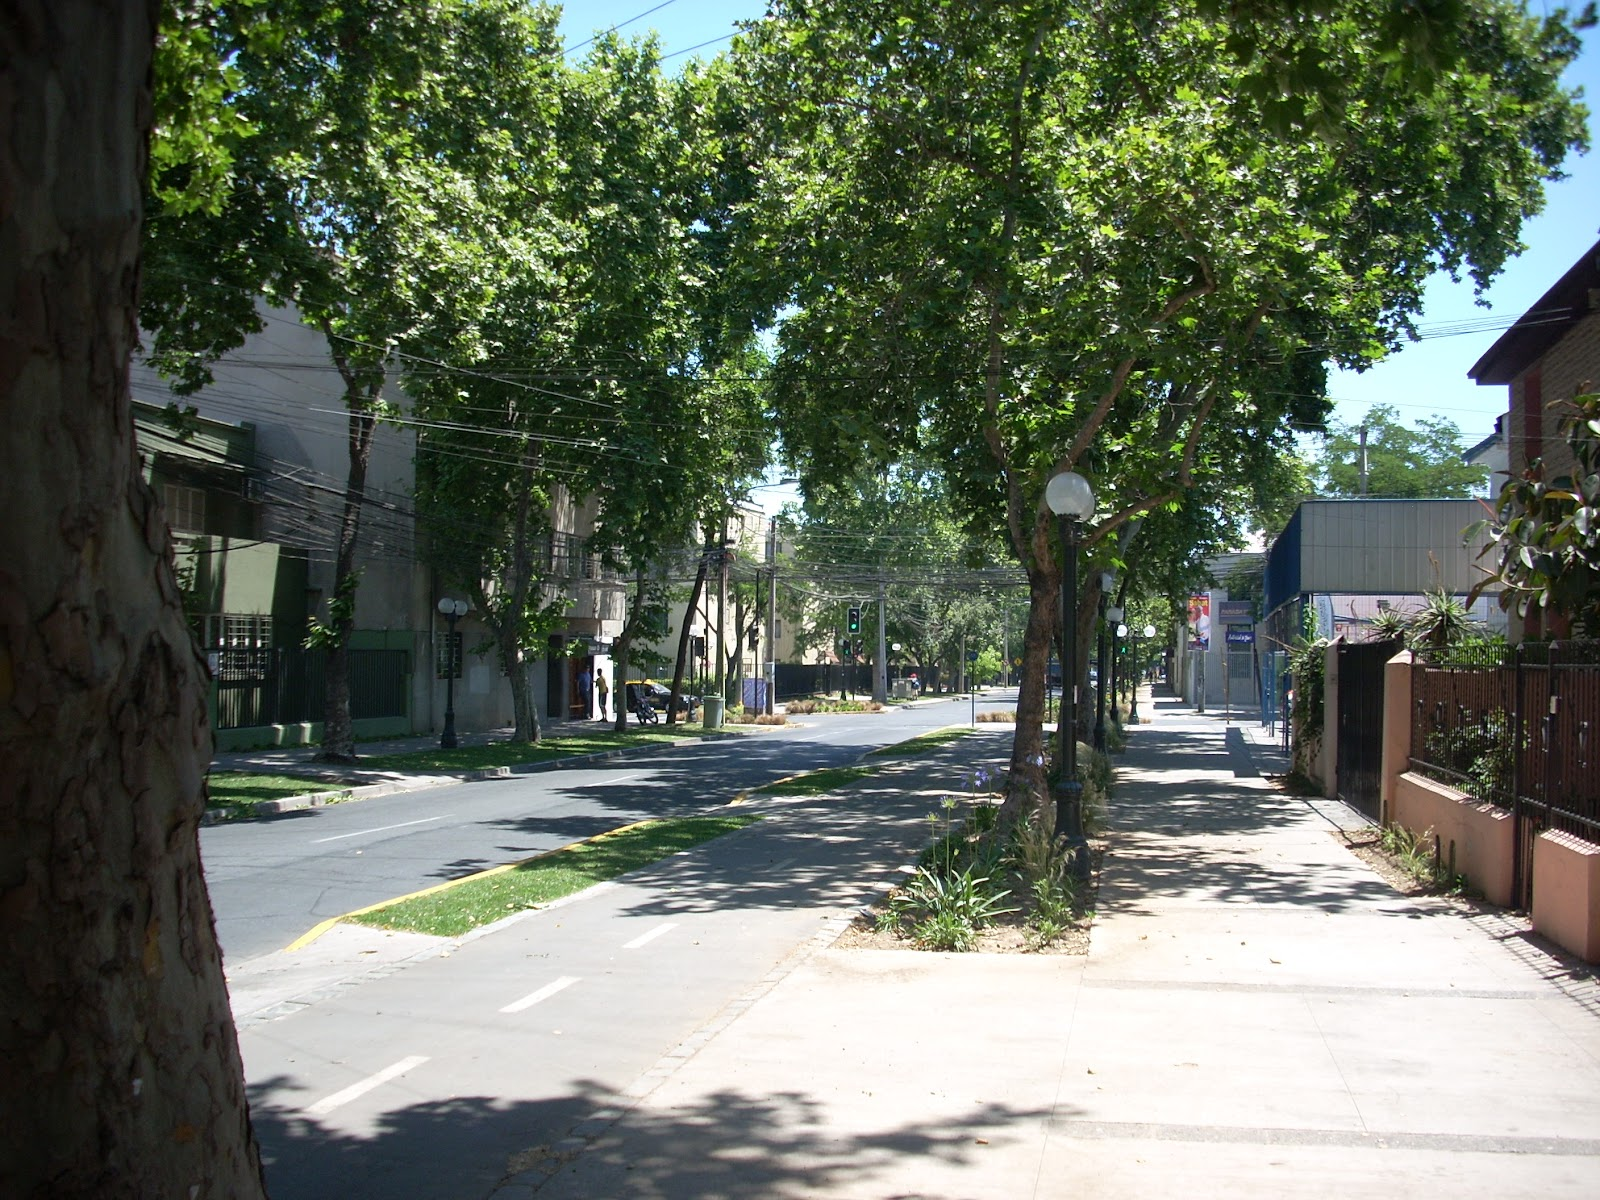 Nice streets too - notice the bike path between the trees and road?